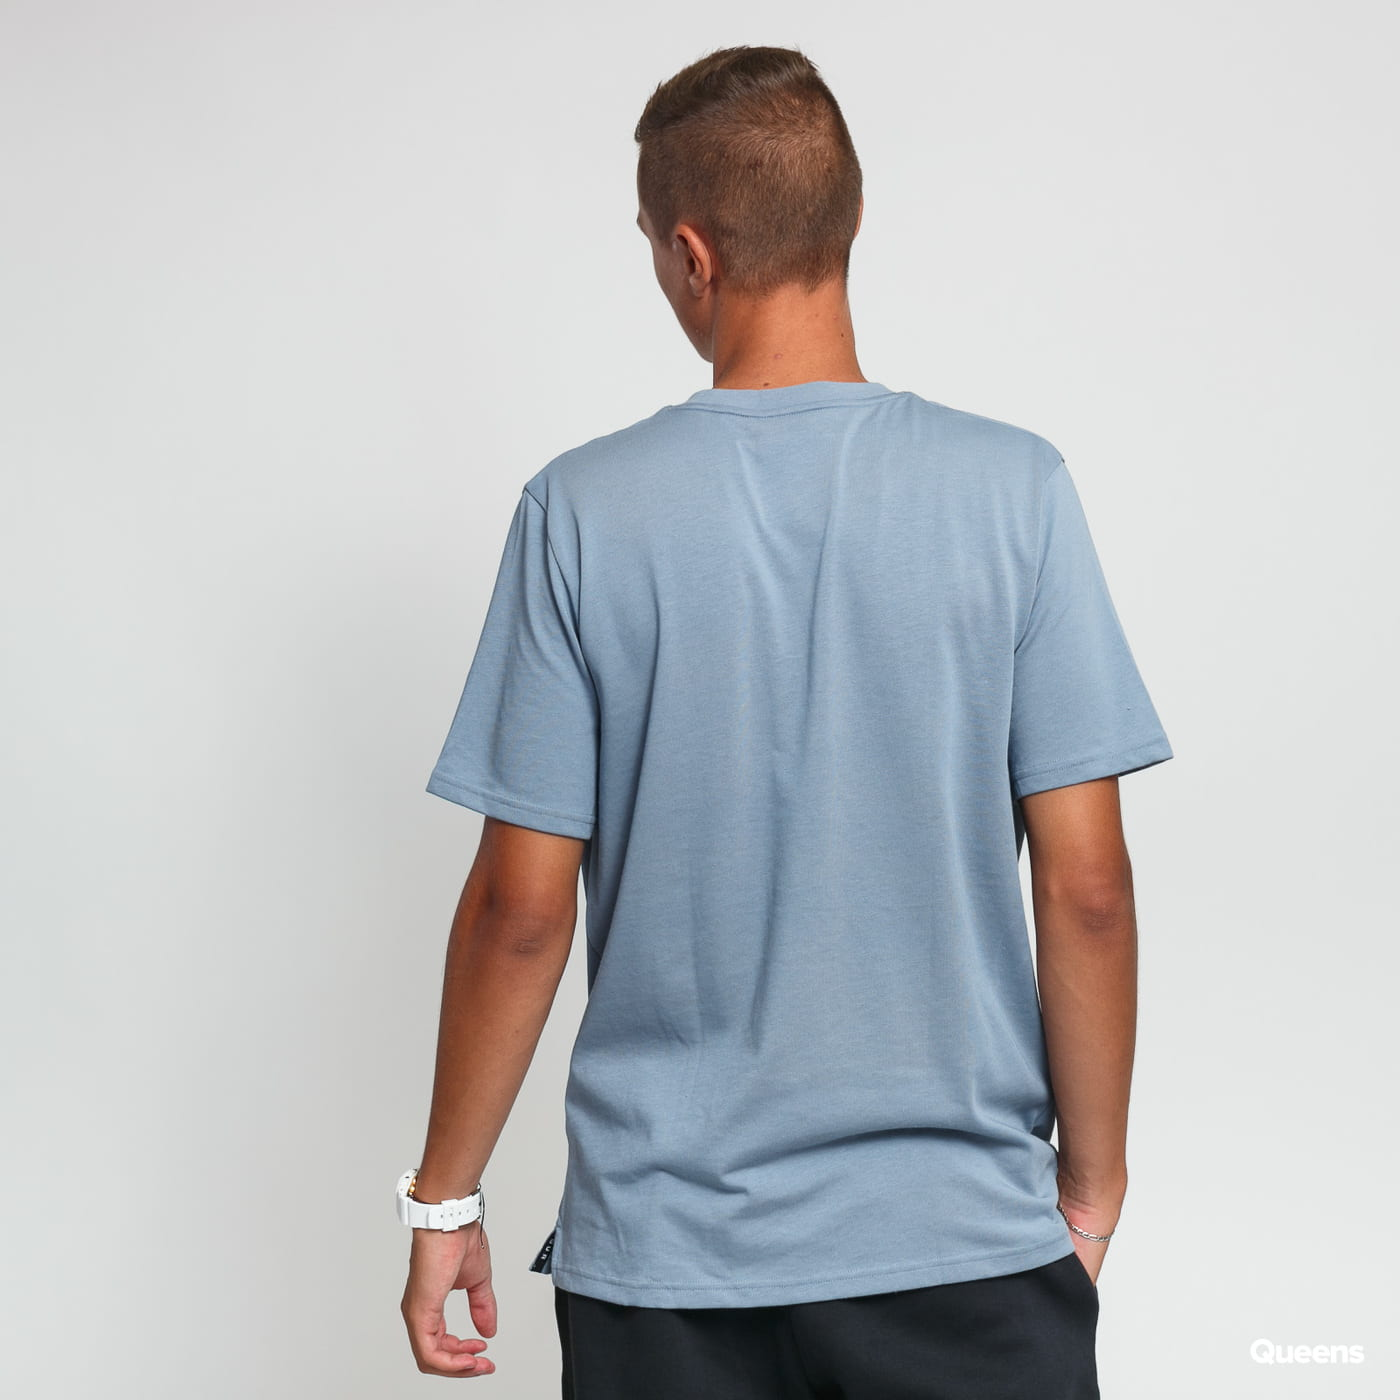 Under Armour Unstoppable Knit Tee grey-blue